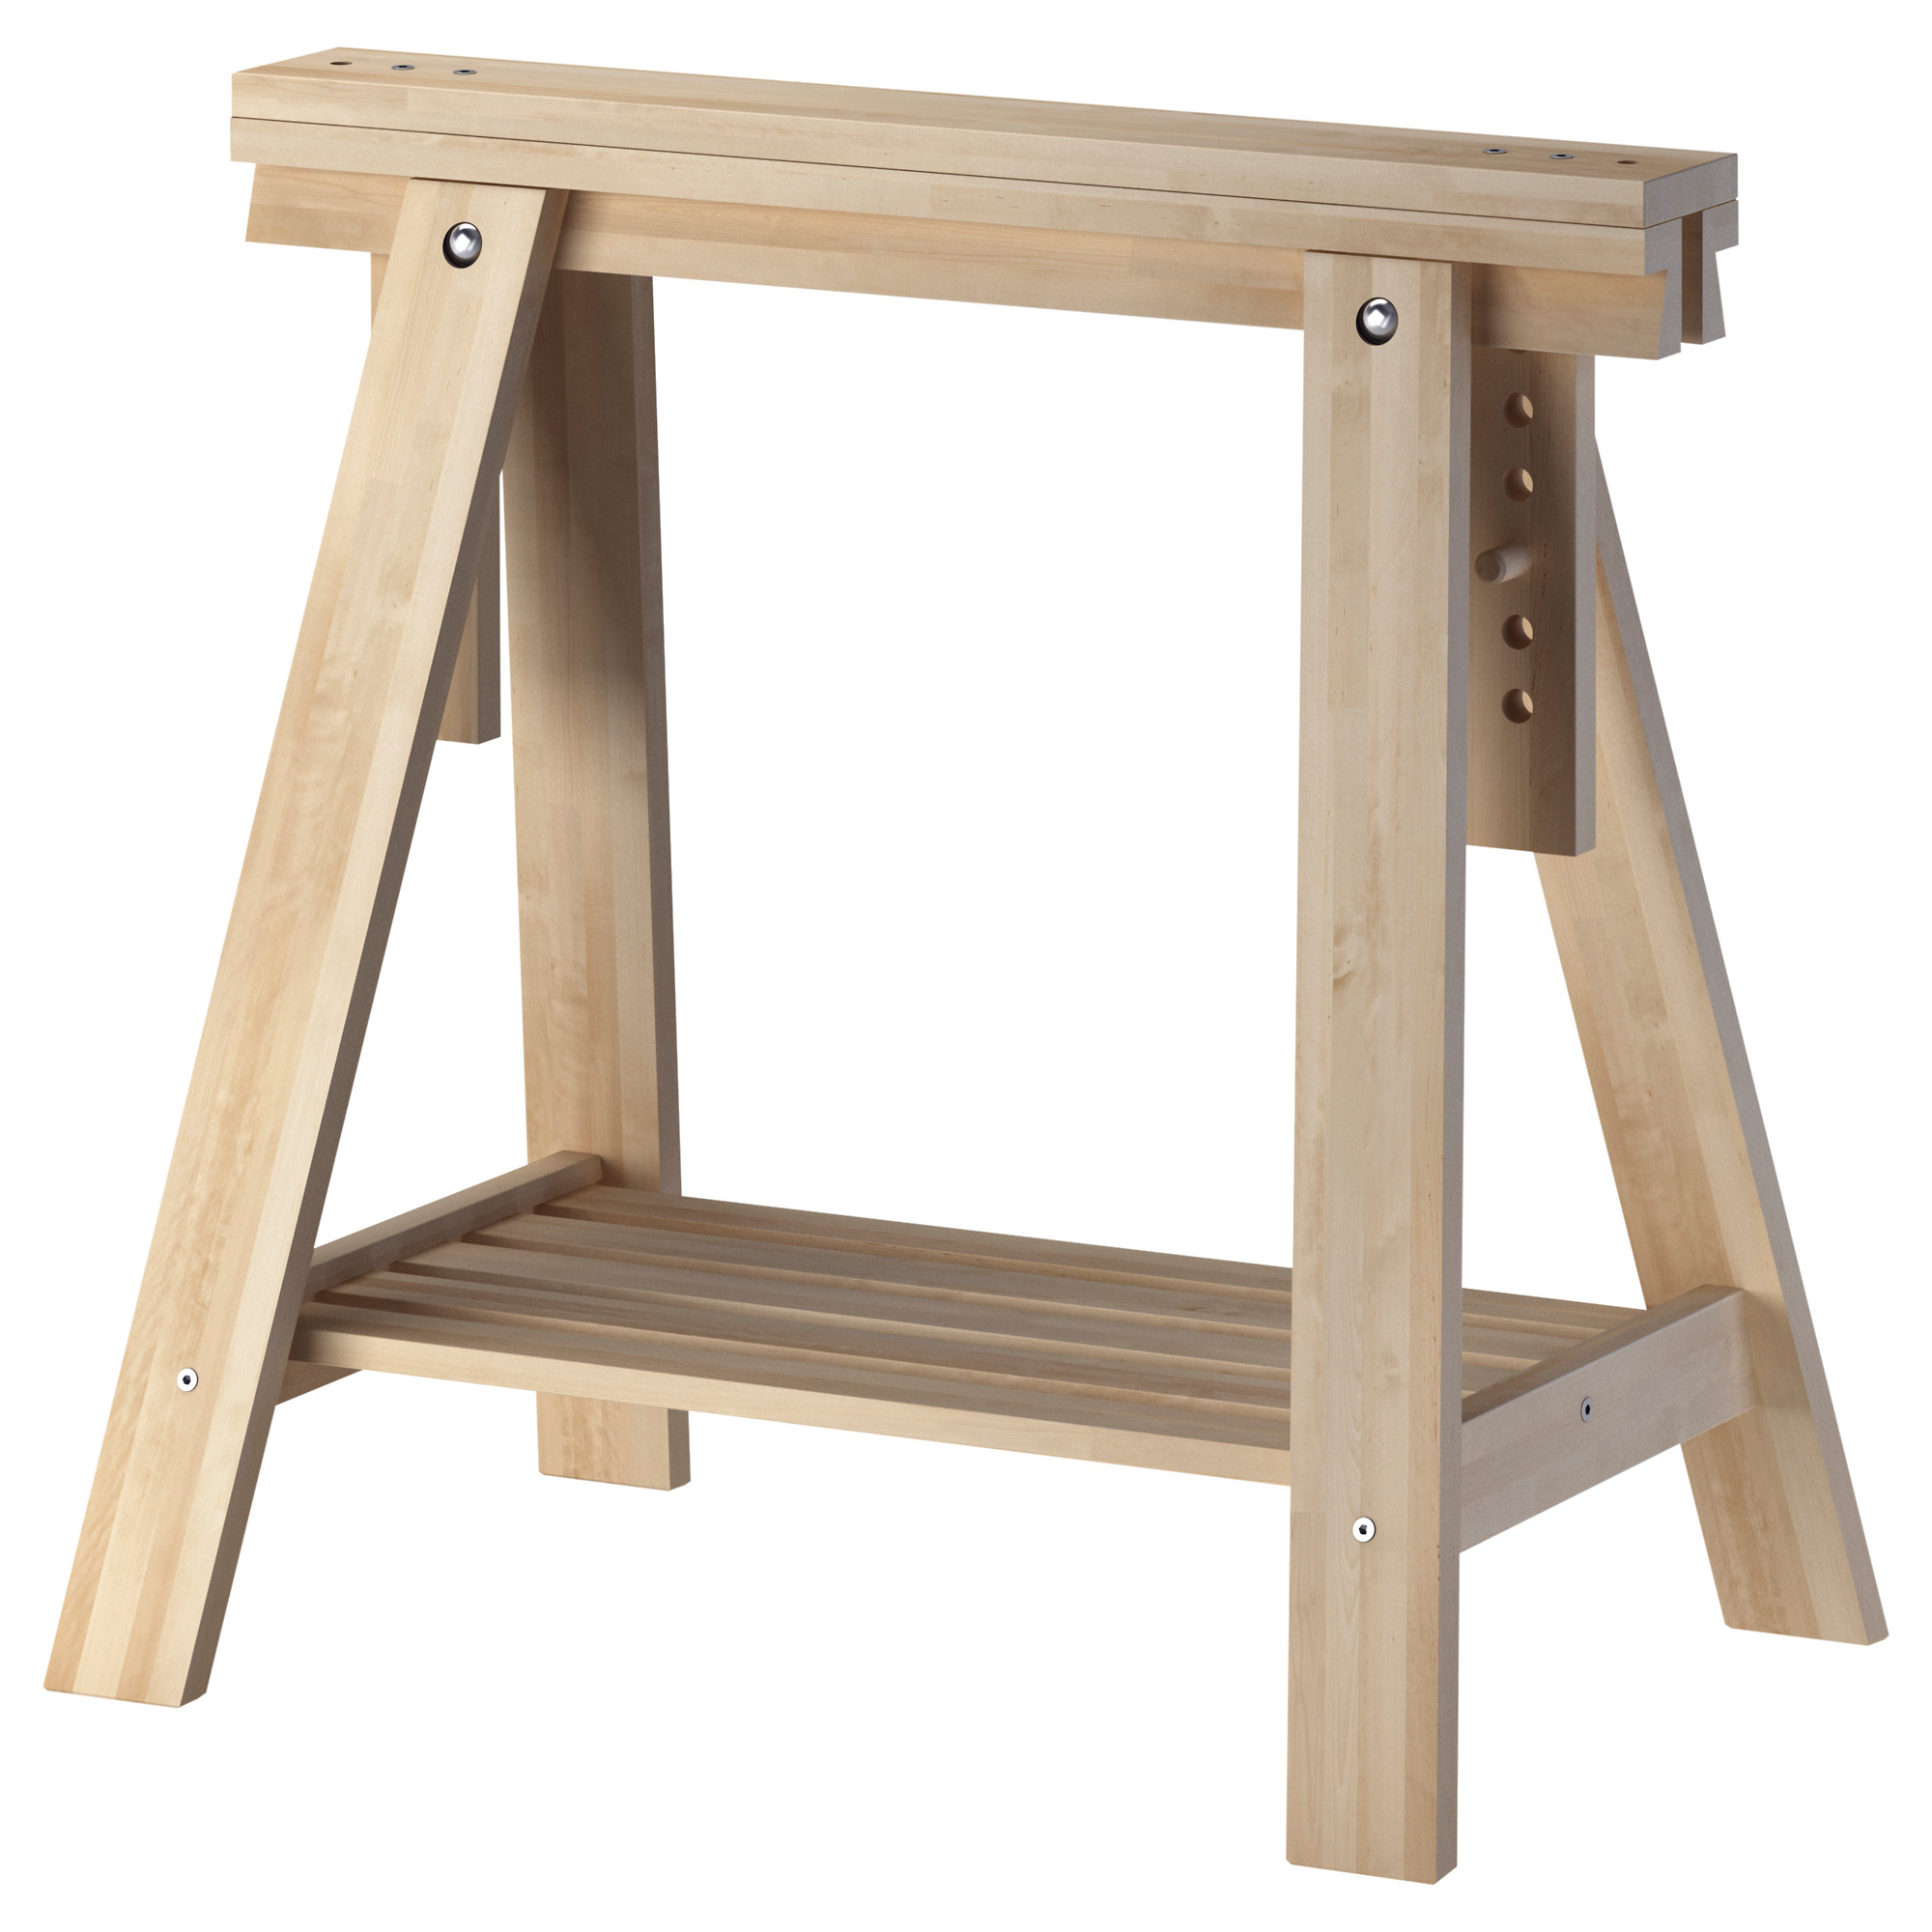 Work Bench Legs for Best Your Workspace Furniture Design: Work Bench Legs | Industrial Workbench Legs | Work Bench Leg